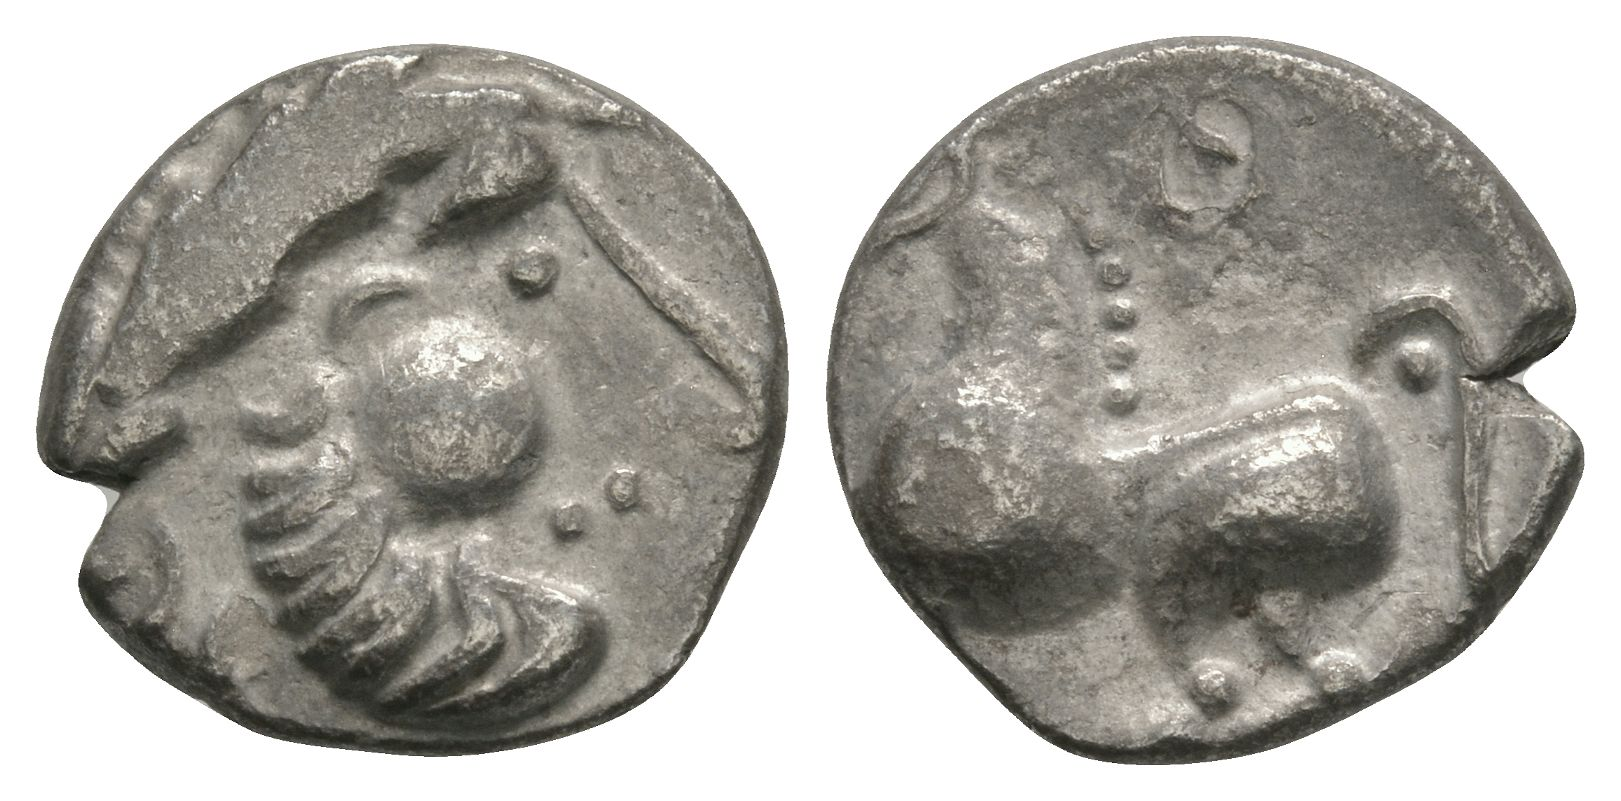 Celtic Iron Age Coins - Celti-Iberian - Horse Unit